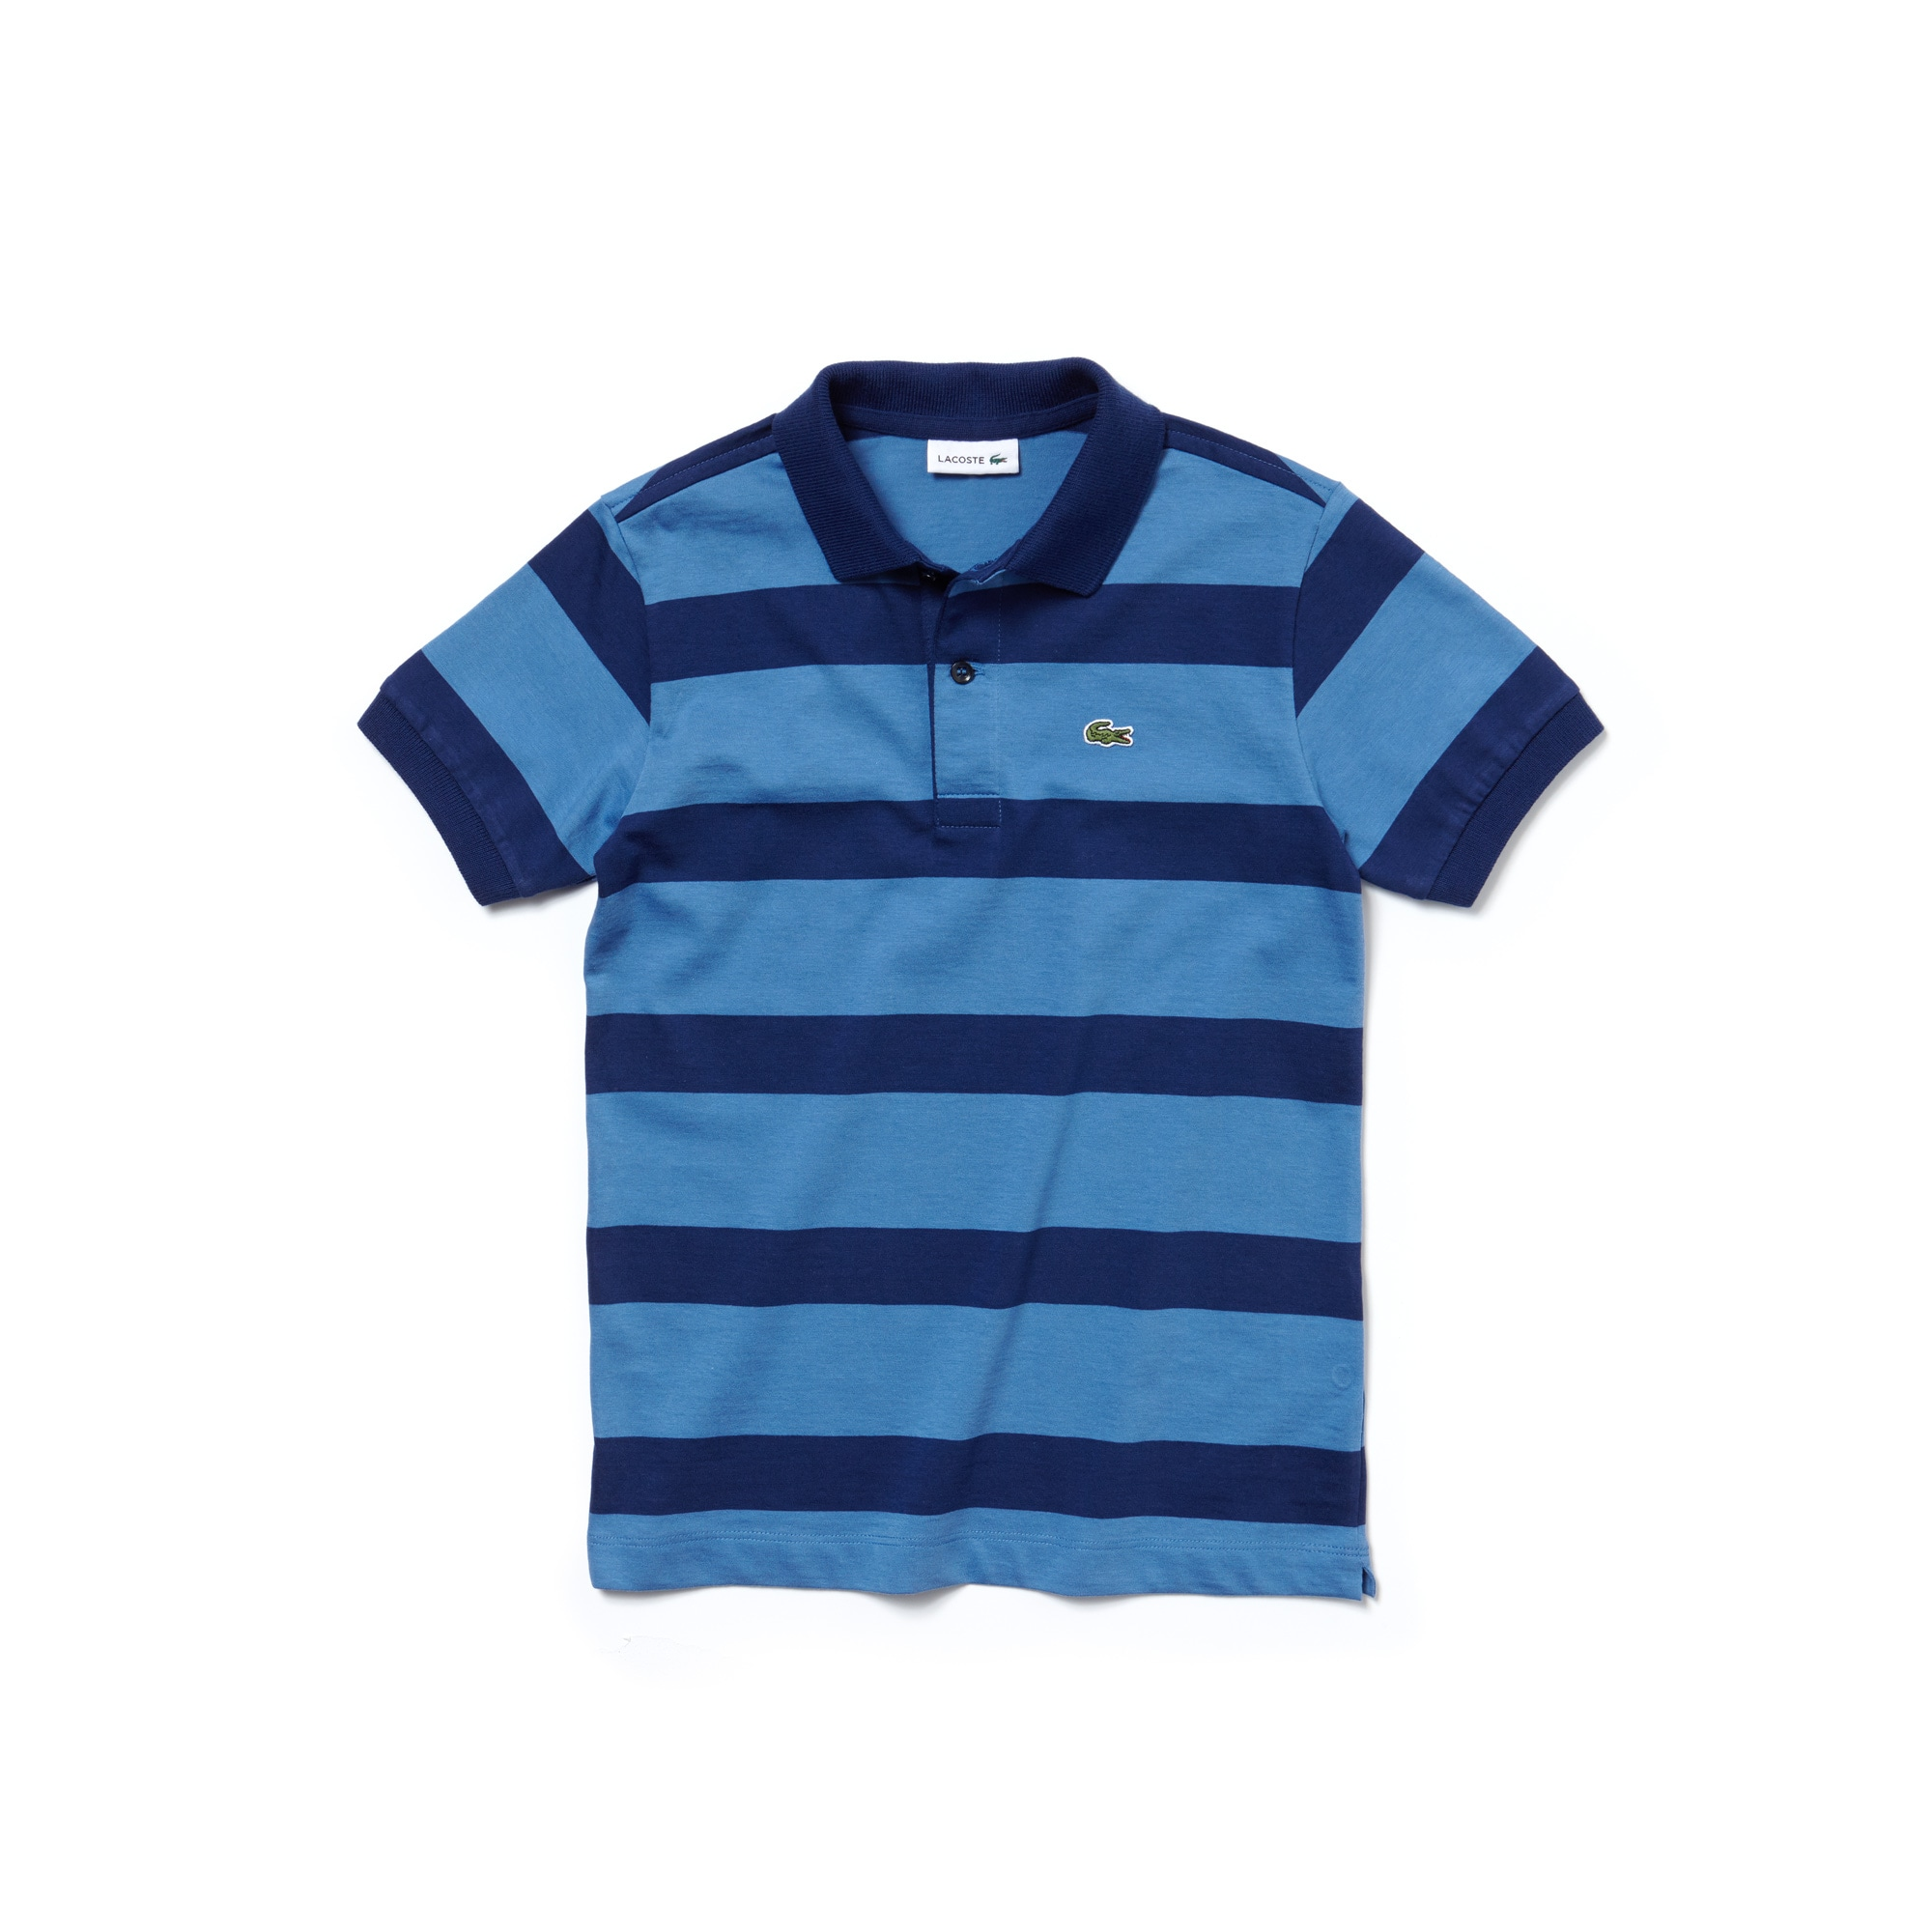 Boys'  Striped Cotton Jersey Polo